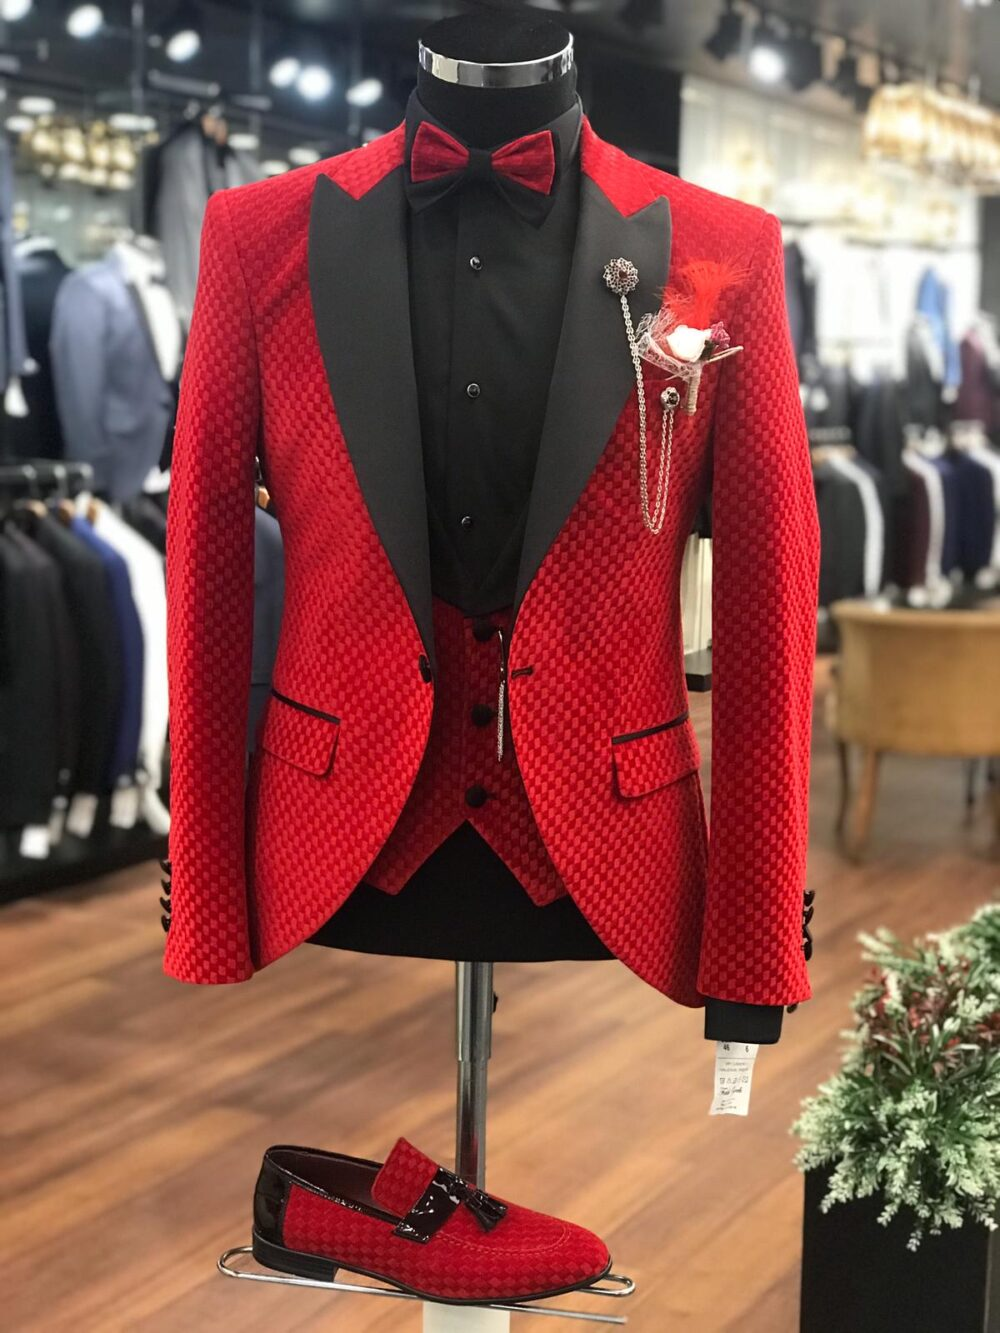 Red Slim Fit Peak Lapel Bespoke Tuxedo by BespokeDailyShop.com with Free Worldwide Shipping